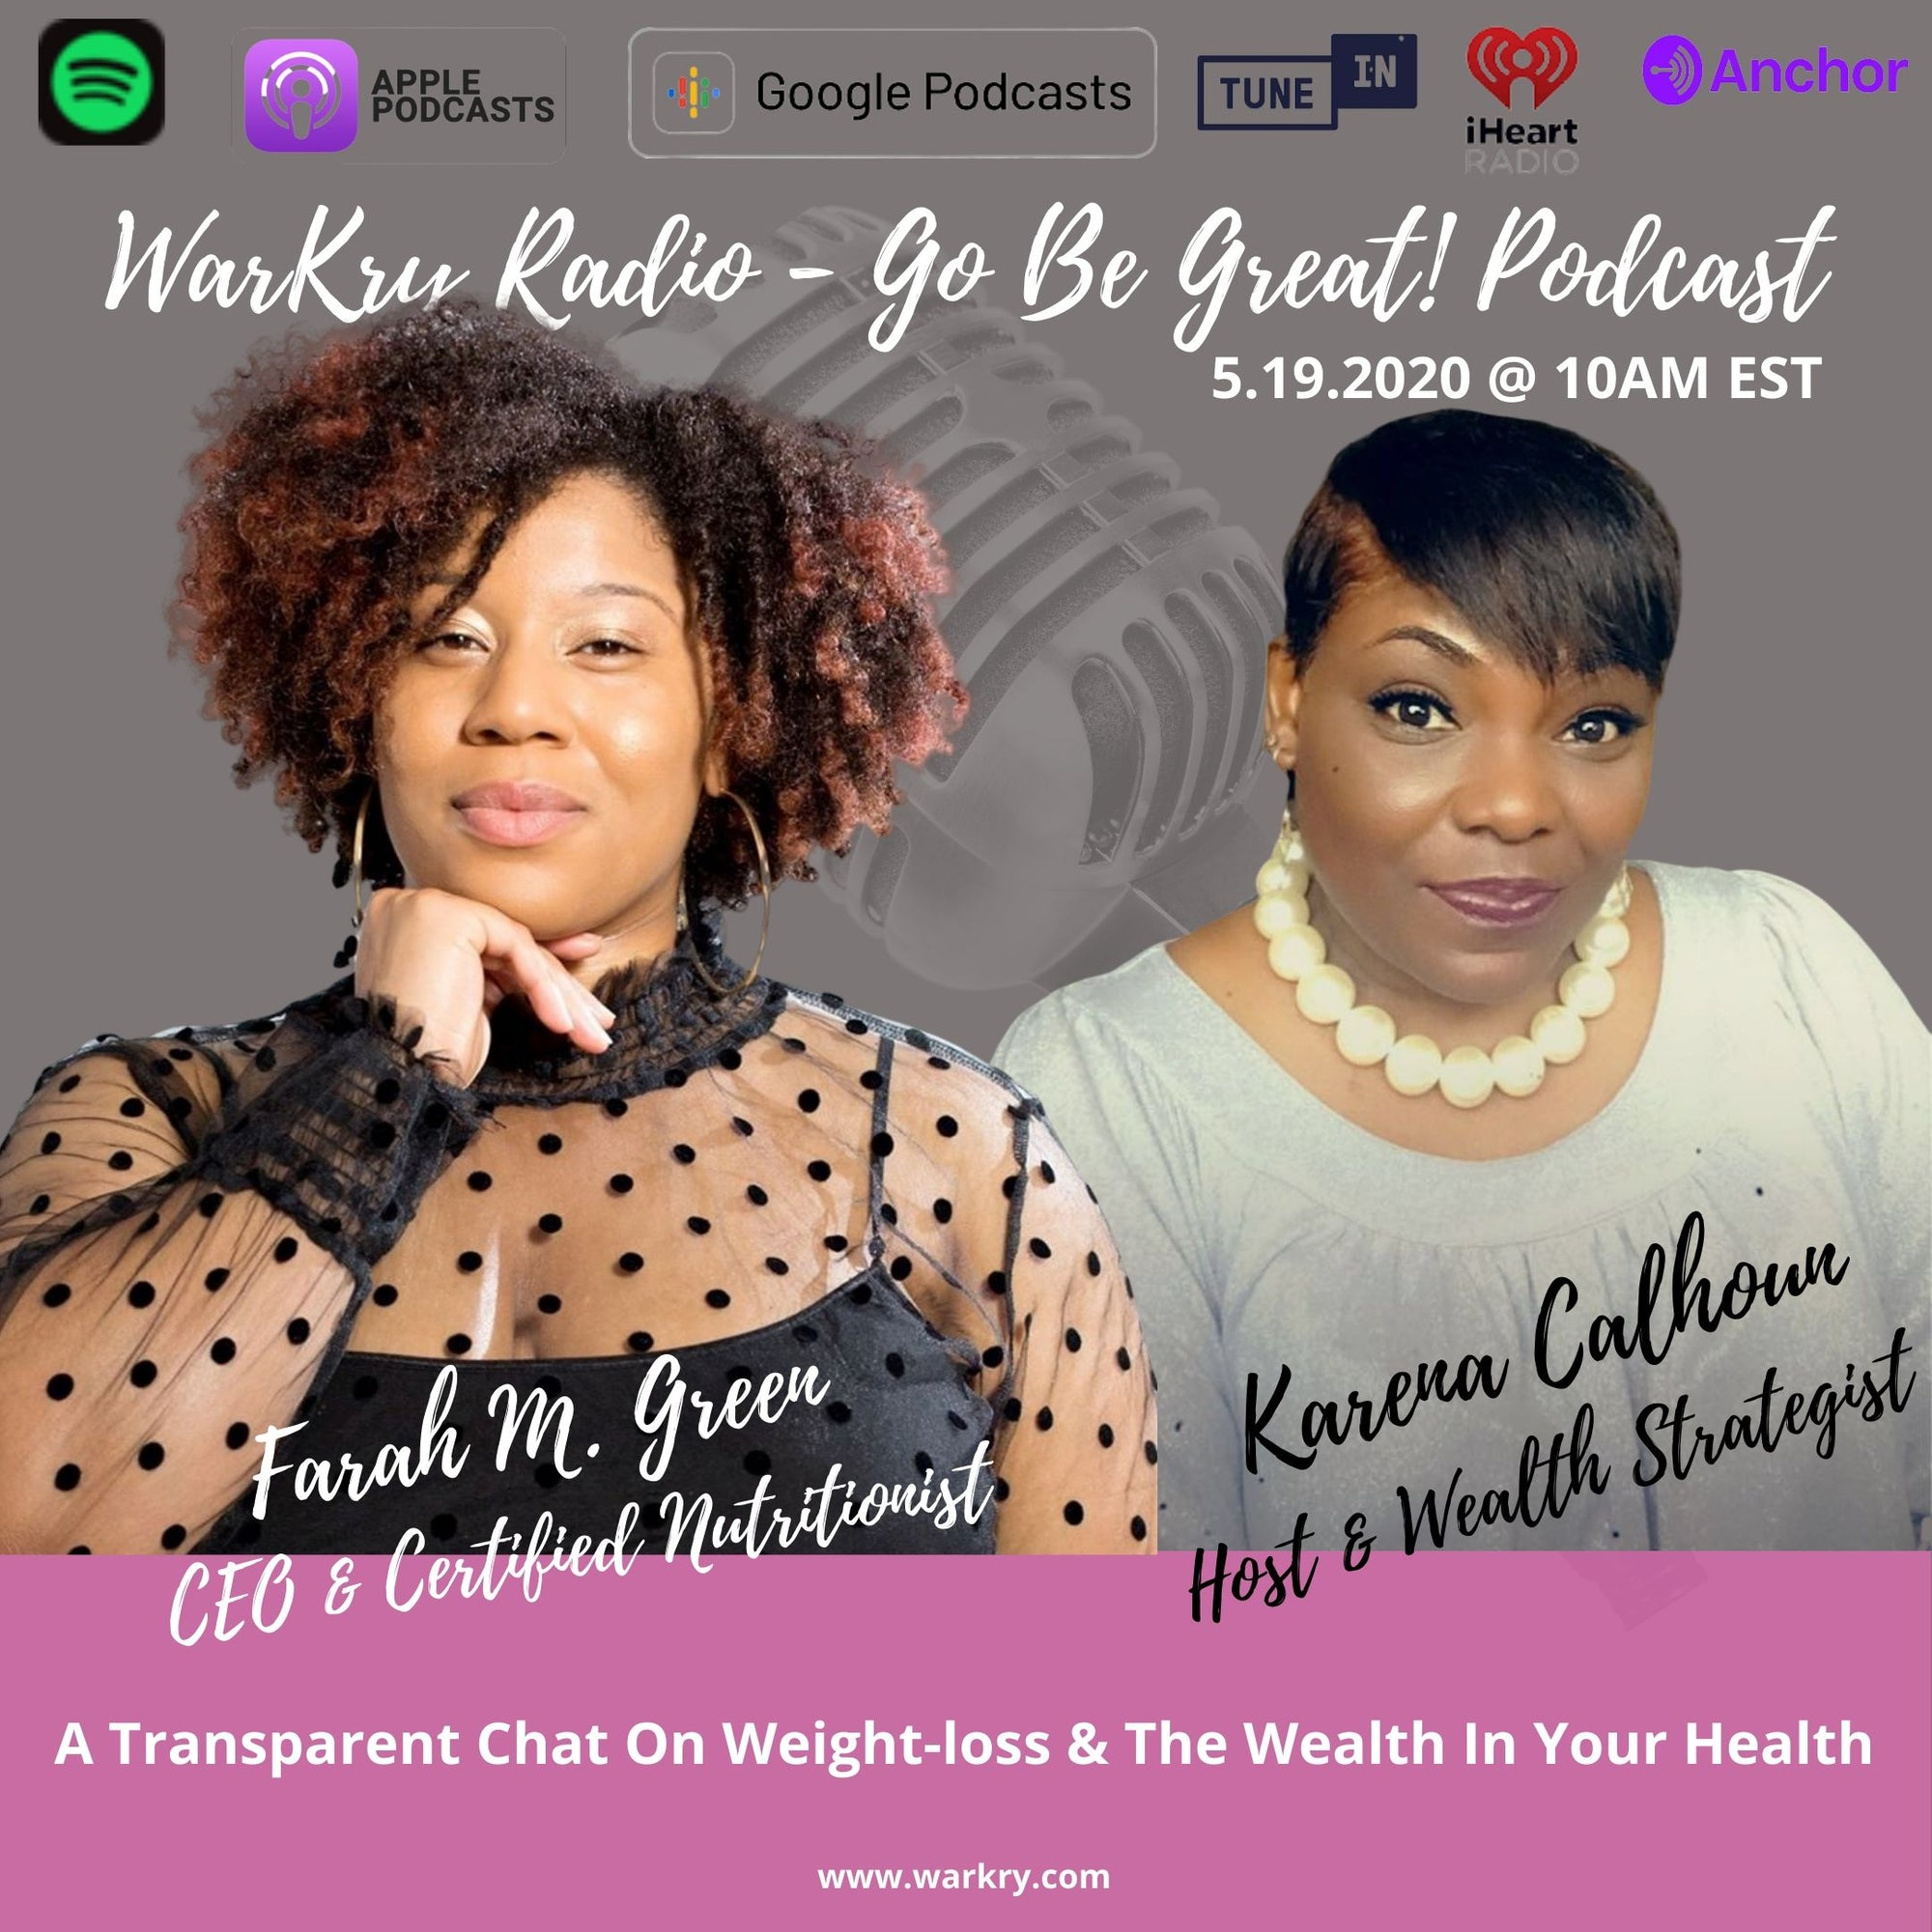 Transparent Fireside Chat On Weight Loss And Finding The Wealth In Your Health